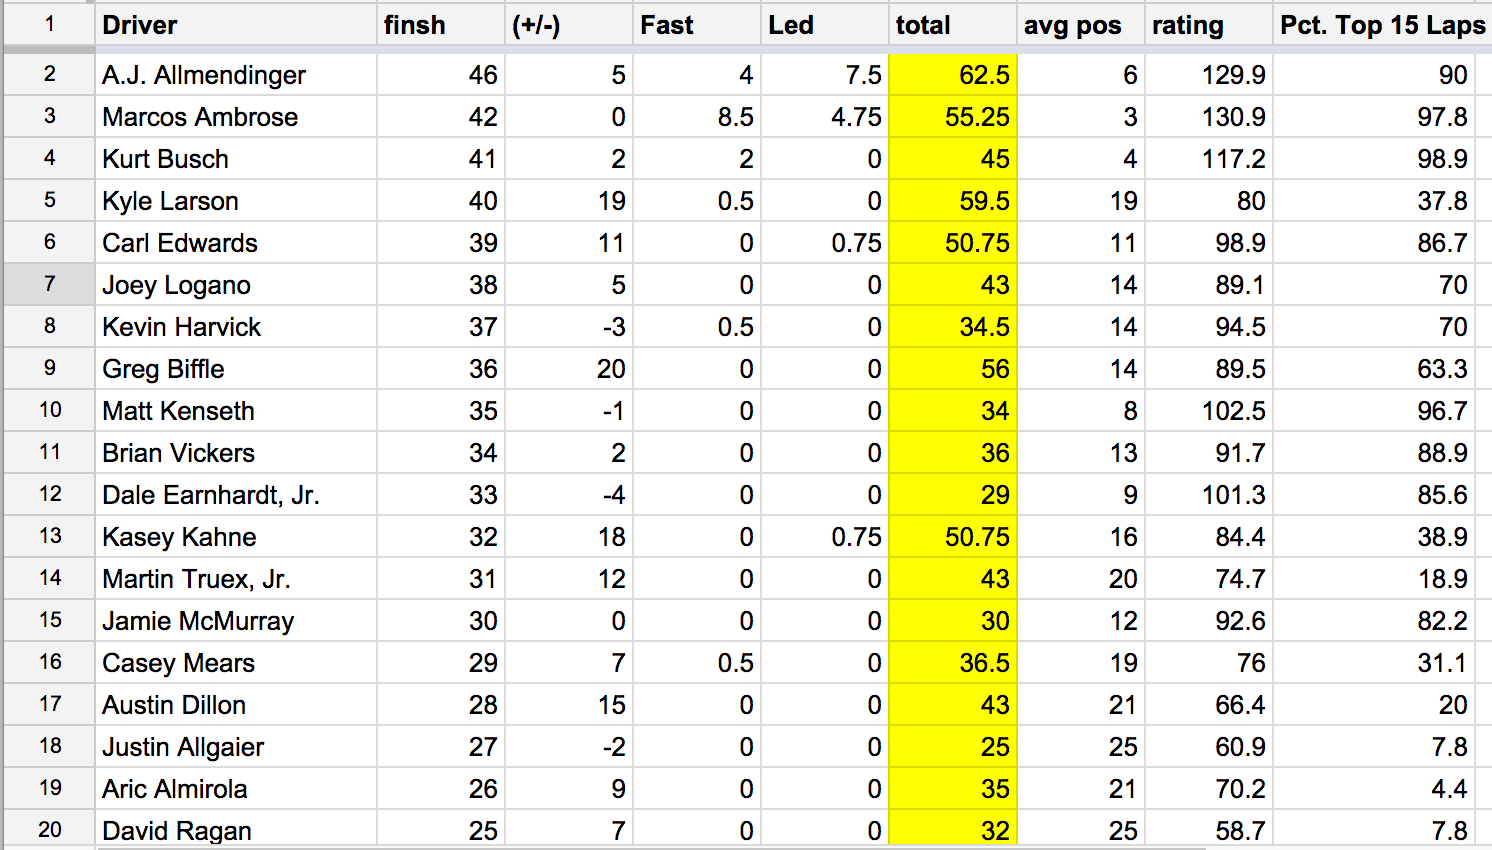 Draftkings Spreadsheet Within Nascar® Spreadsheet: Watkins Glen International  Draftkings Playbook